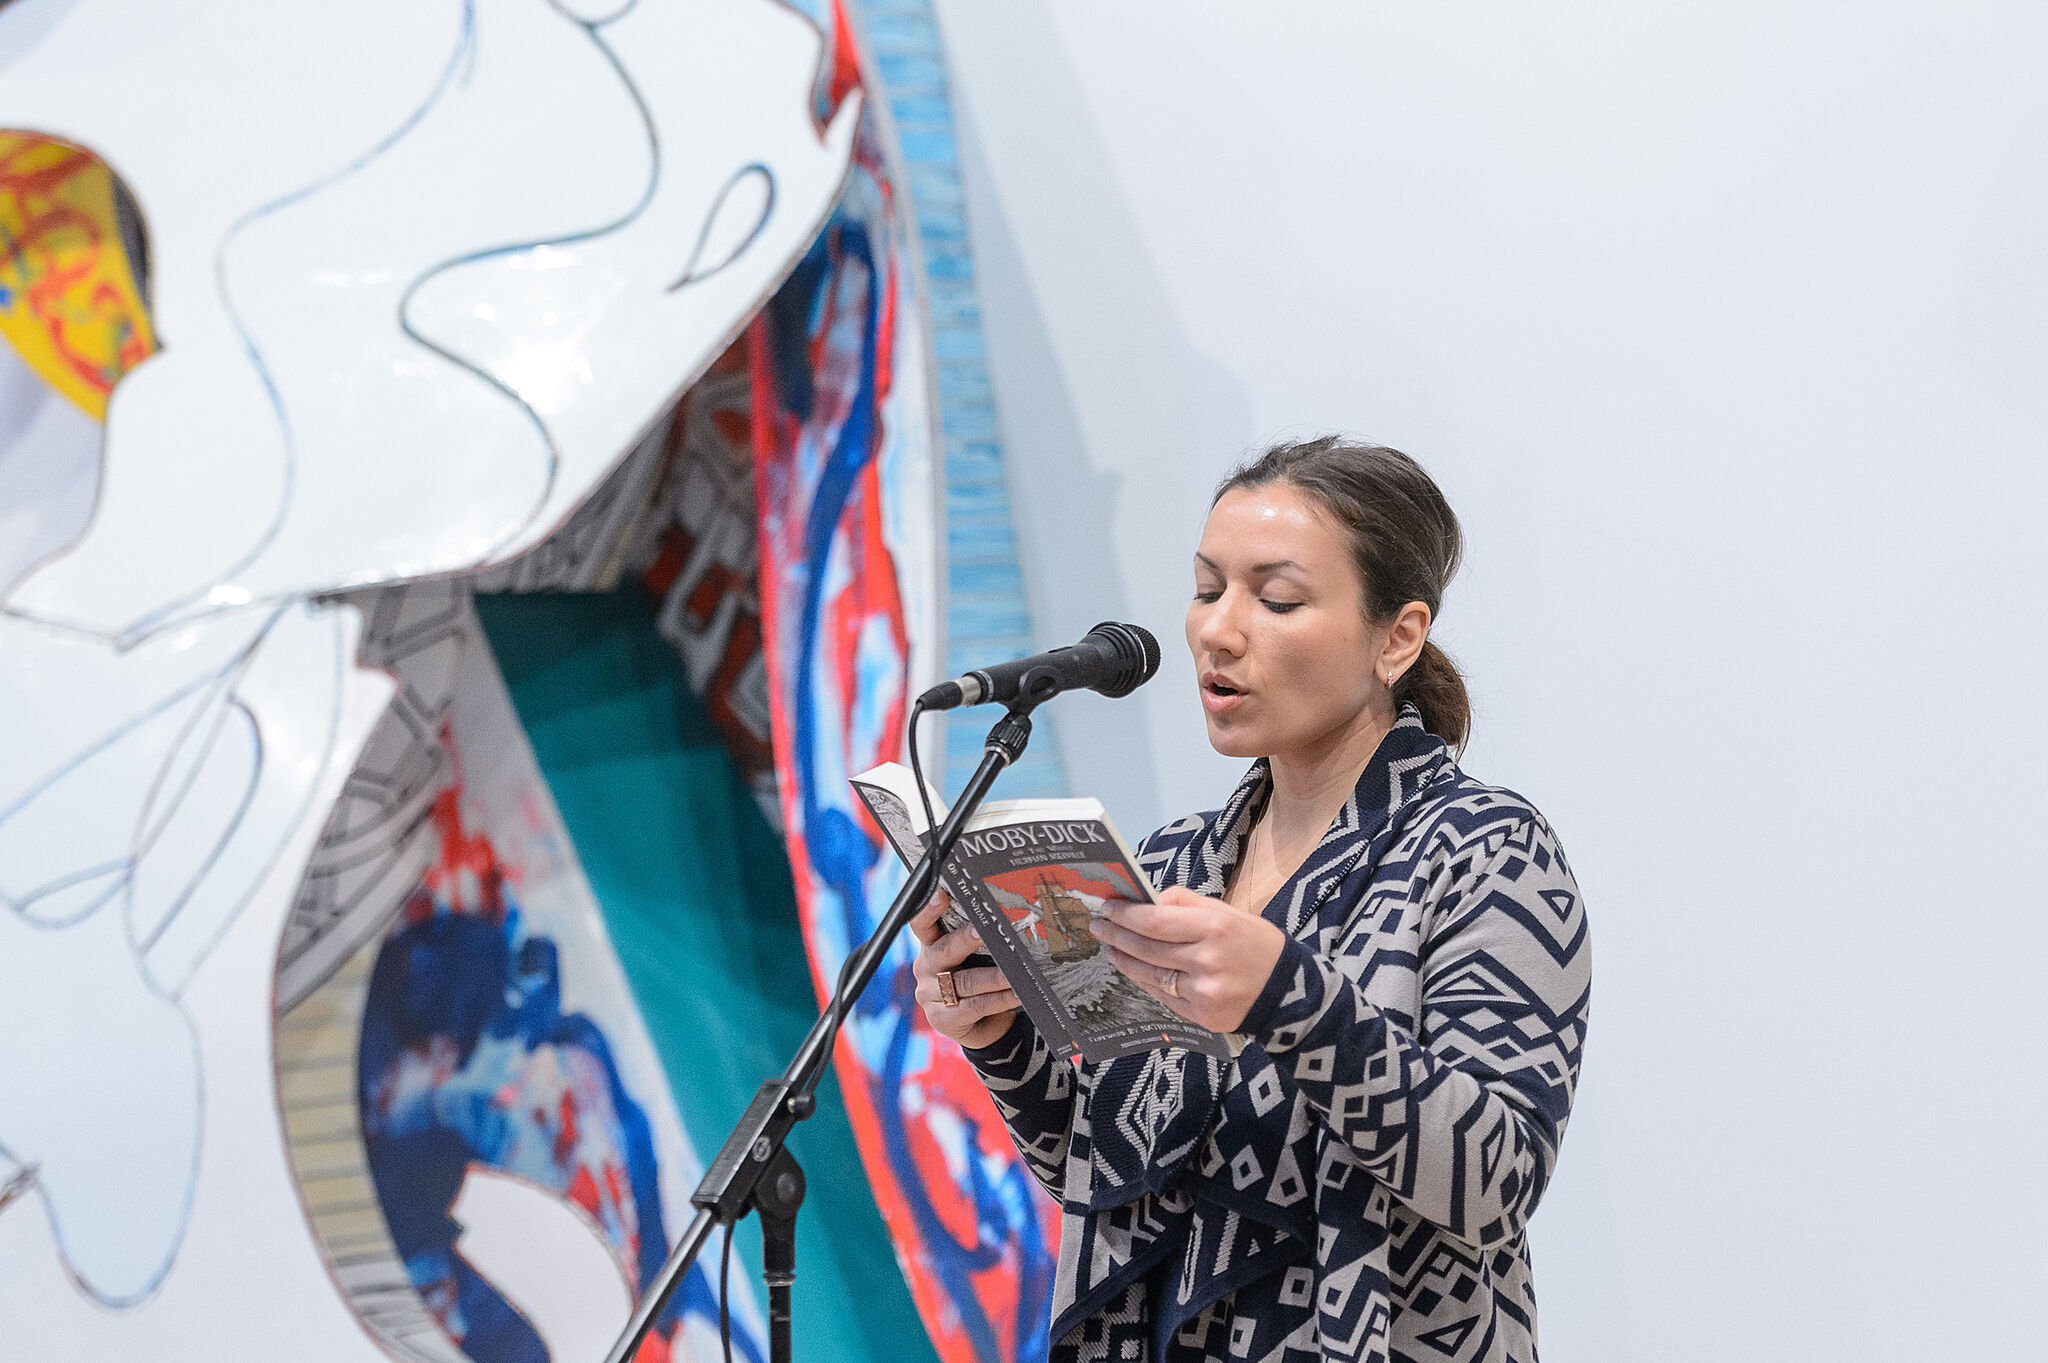 Woman reading into a microphone.